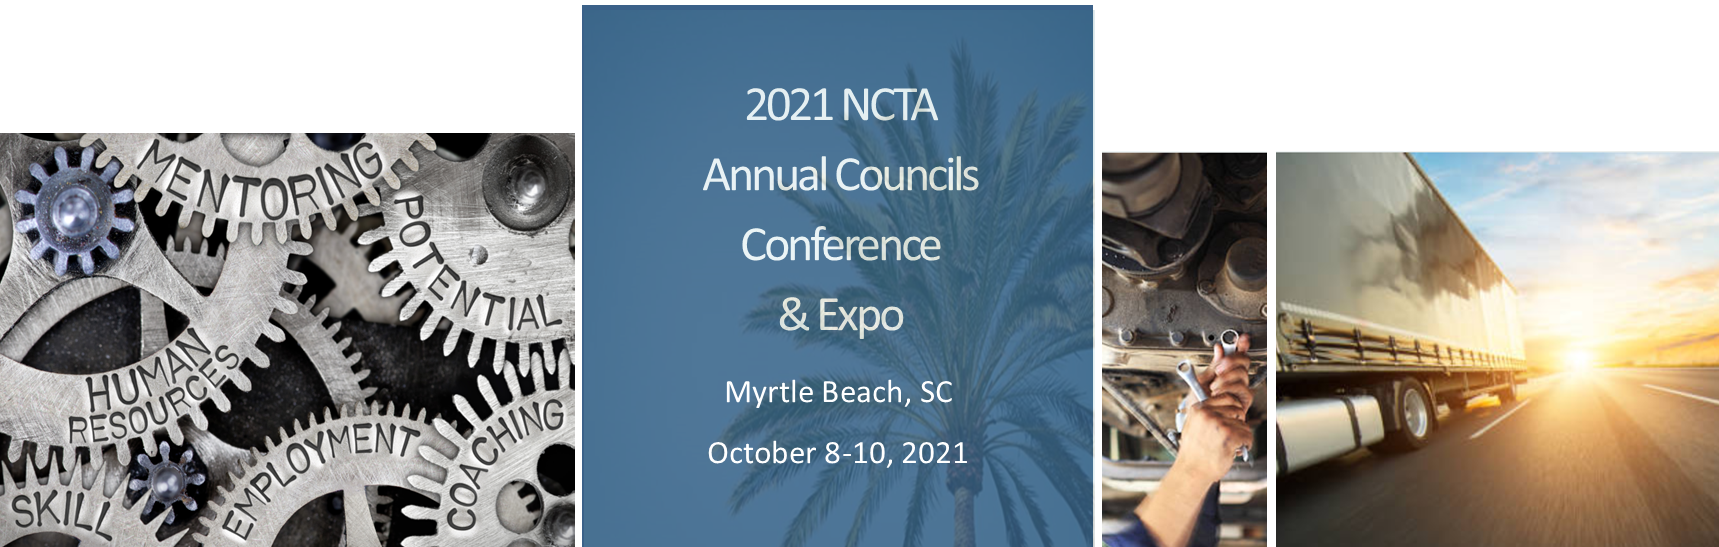 Annual Councils conference website homepage banner FINAL 7-28-21